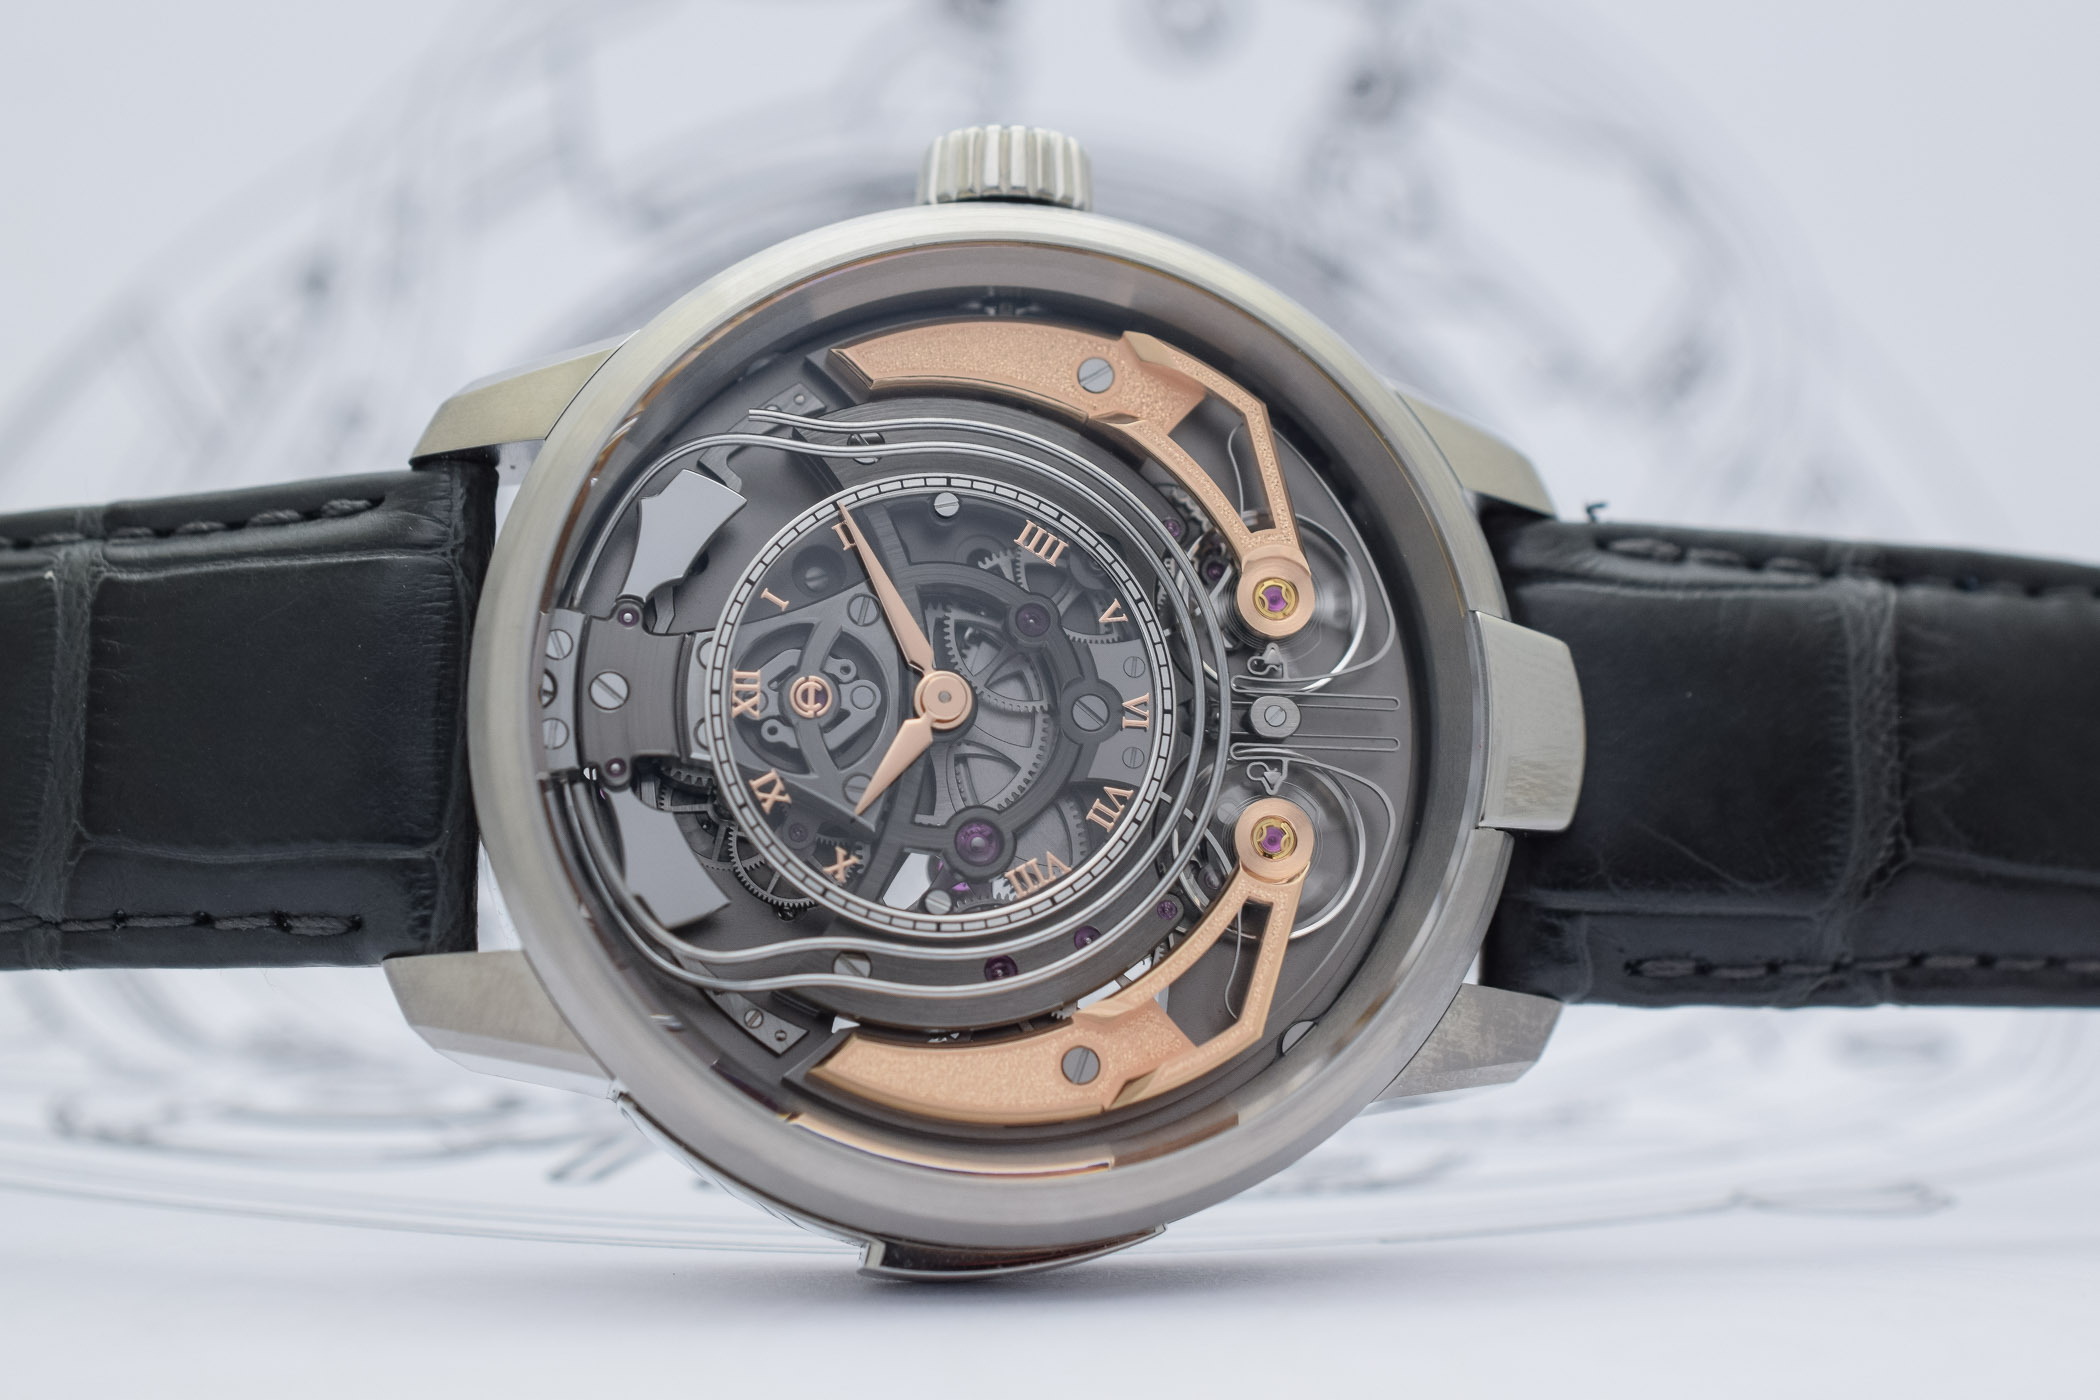 Armin Strom Minute Repeater Resonance Masterpiece 2